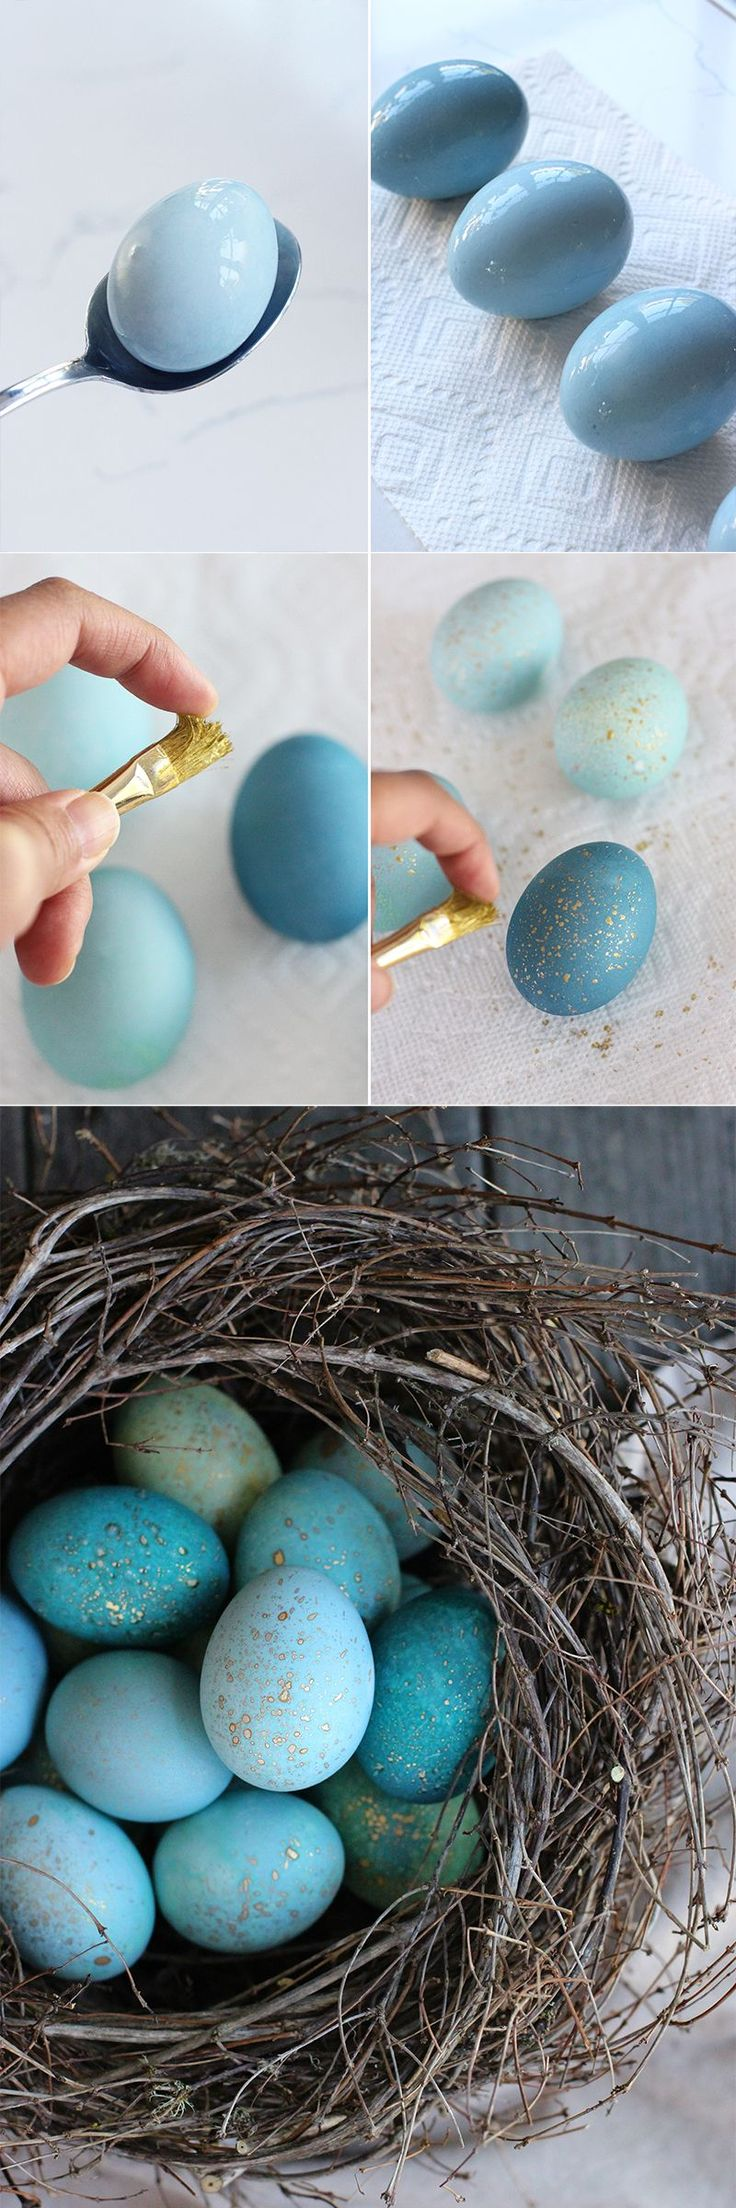 DIY robin eggs for Easter using . . . red cabbage & edible gold paint. #Crafts #Robin_Eggs